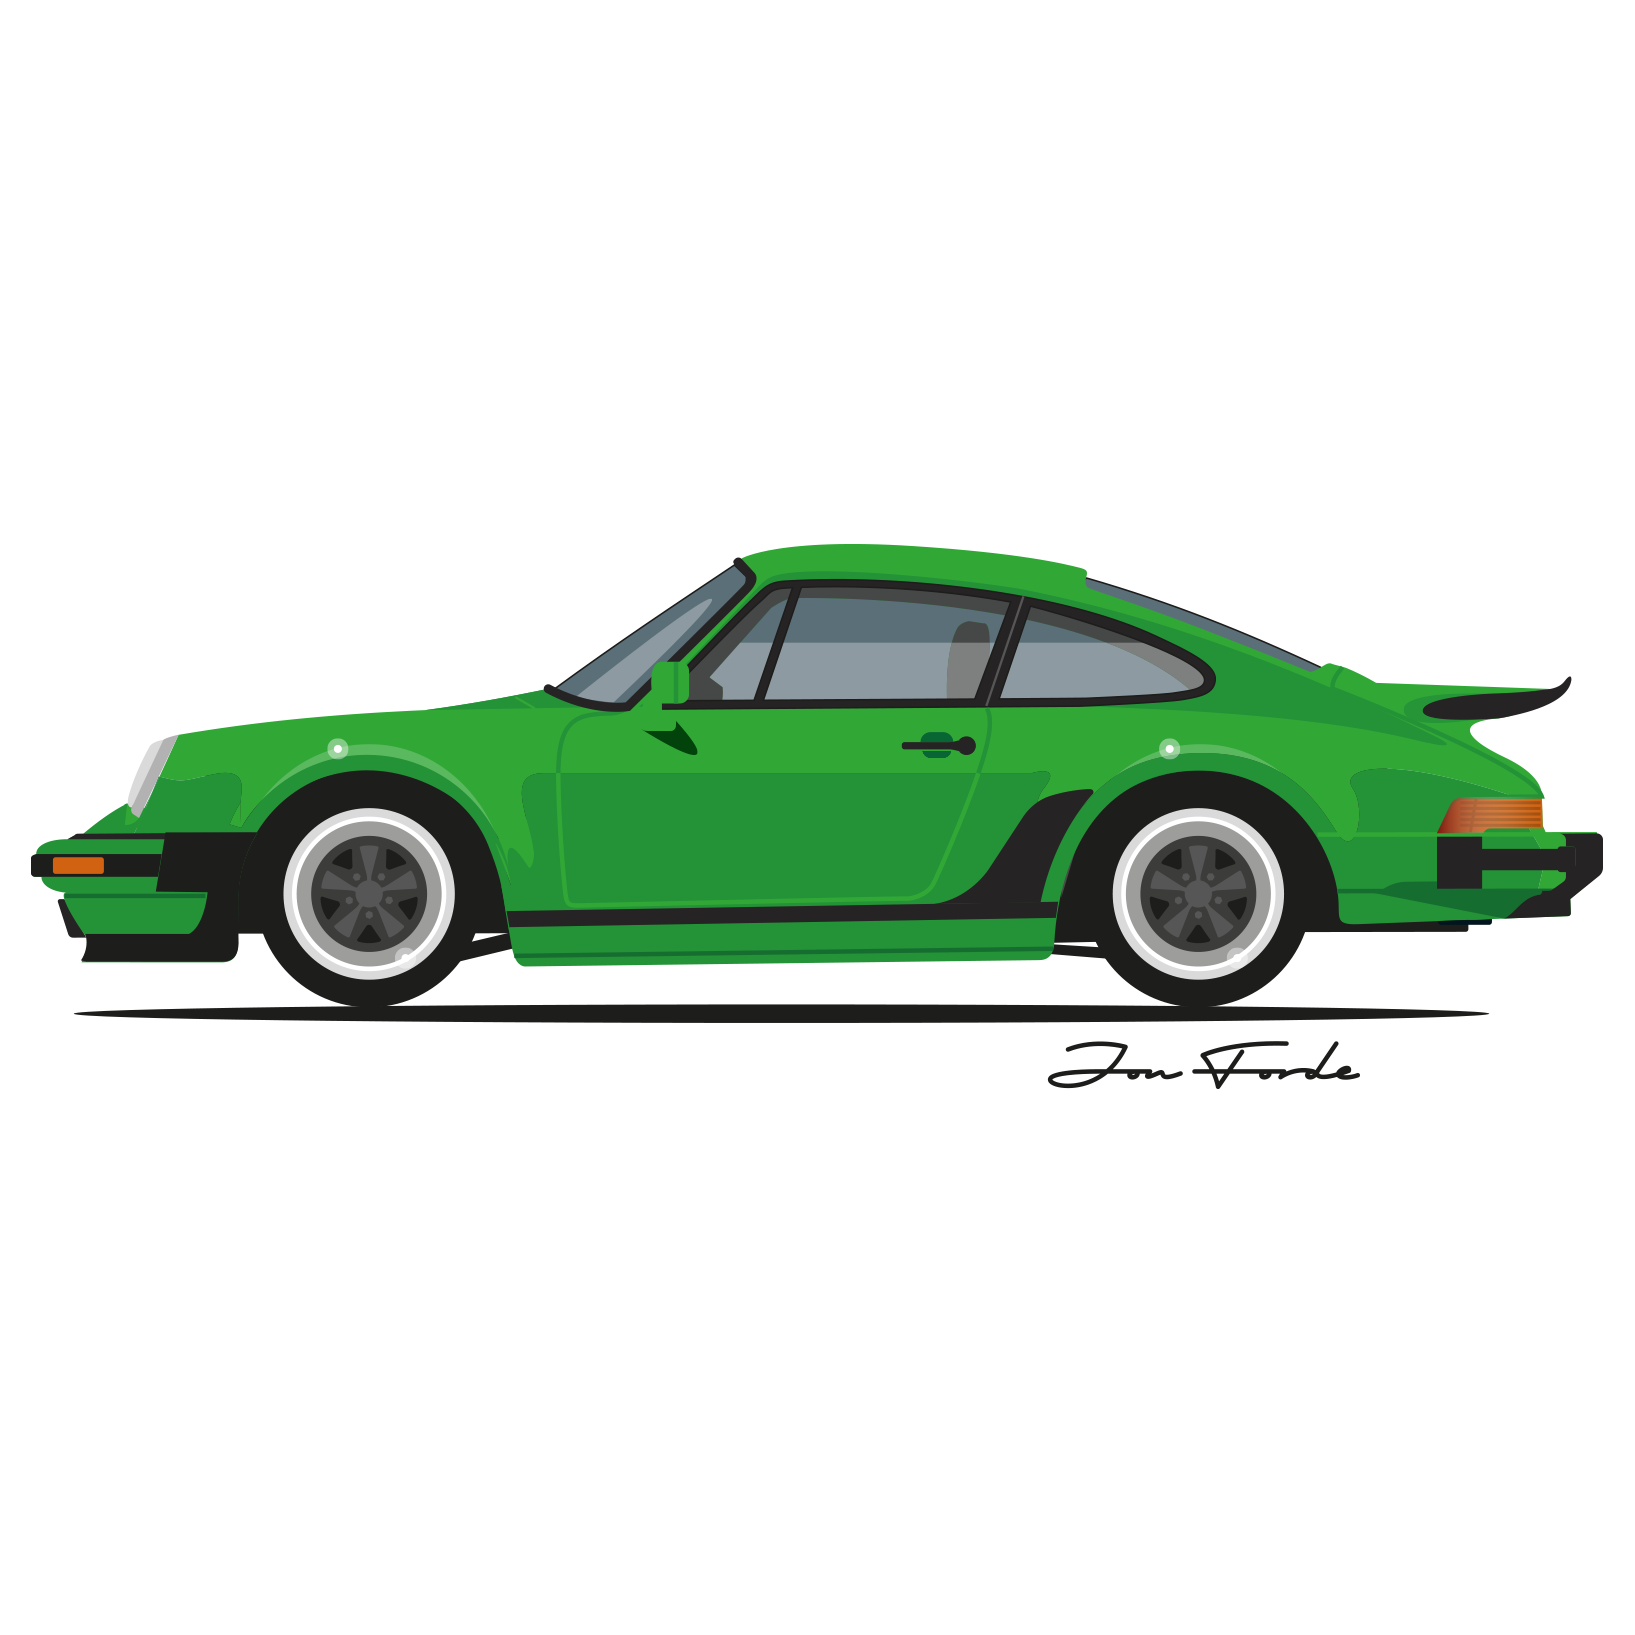 911 drawing artwork. Porsche silhouette at getdrawings